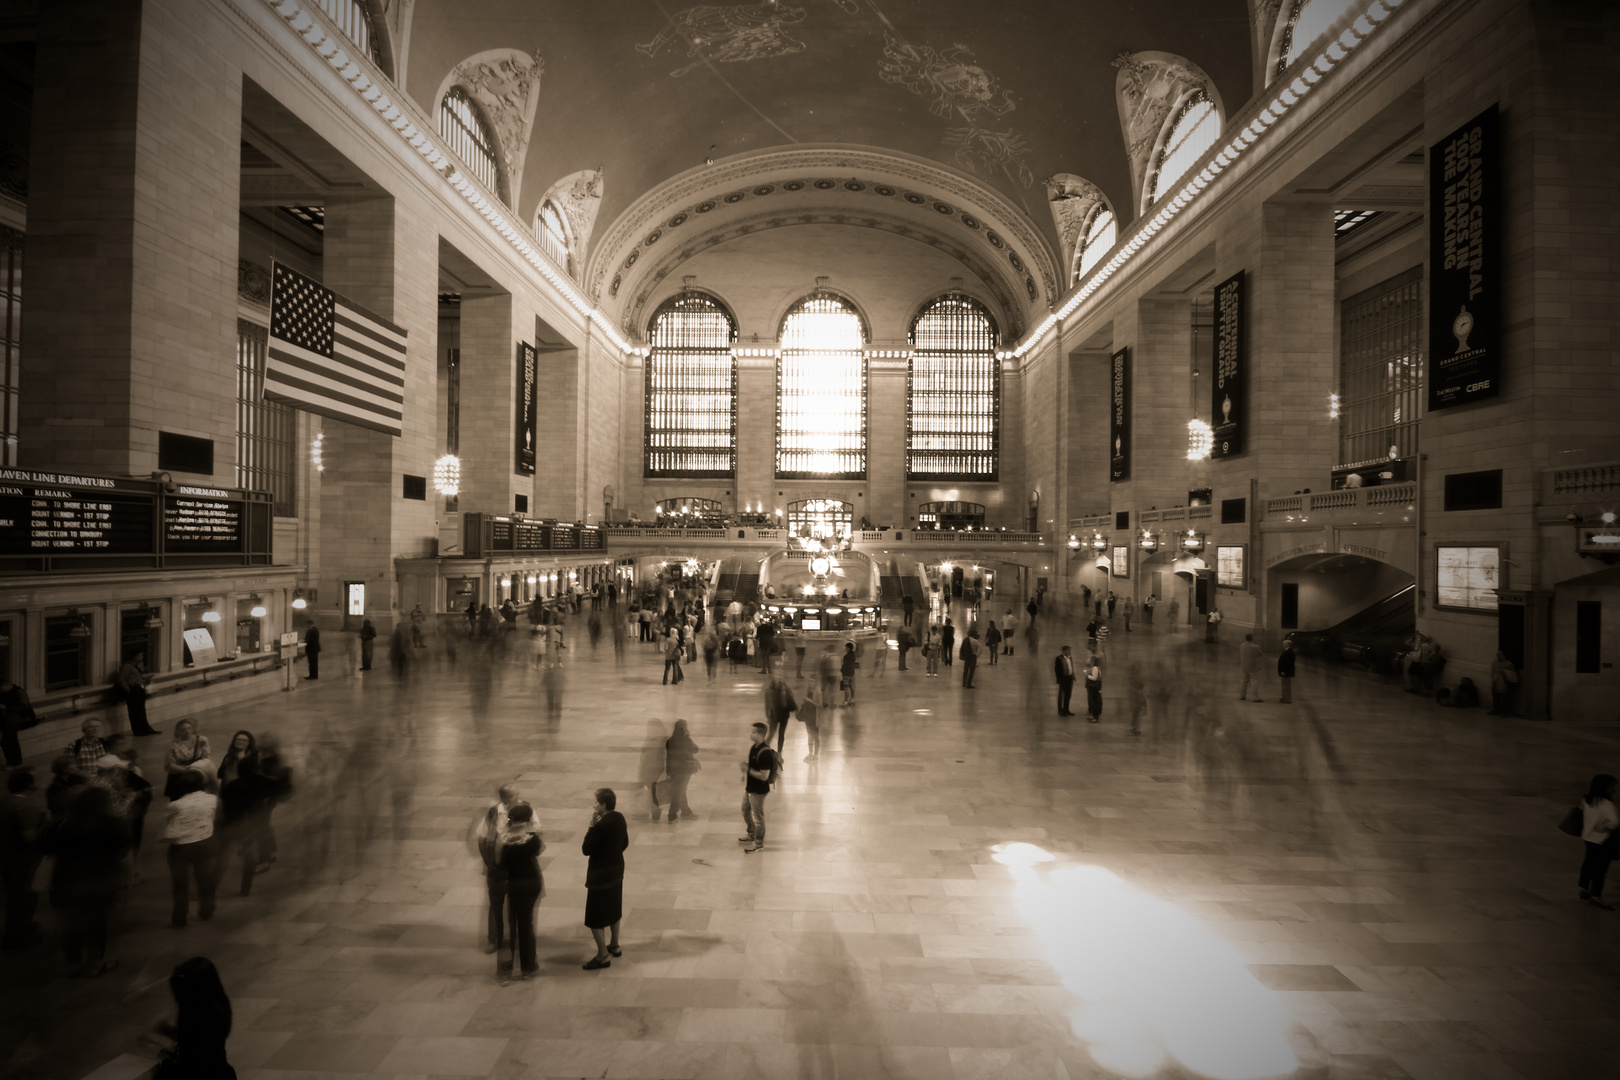 Grand Centrral Station